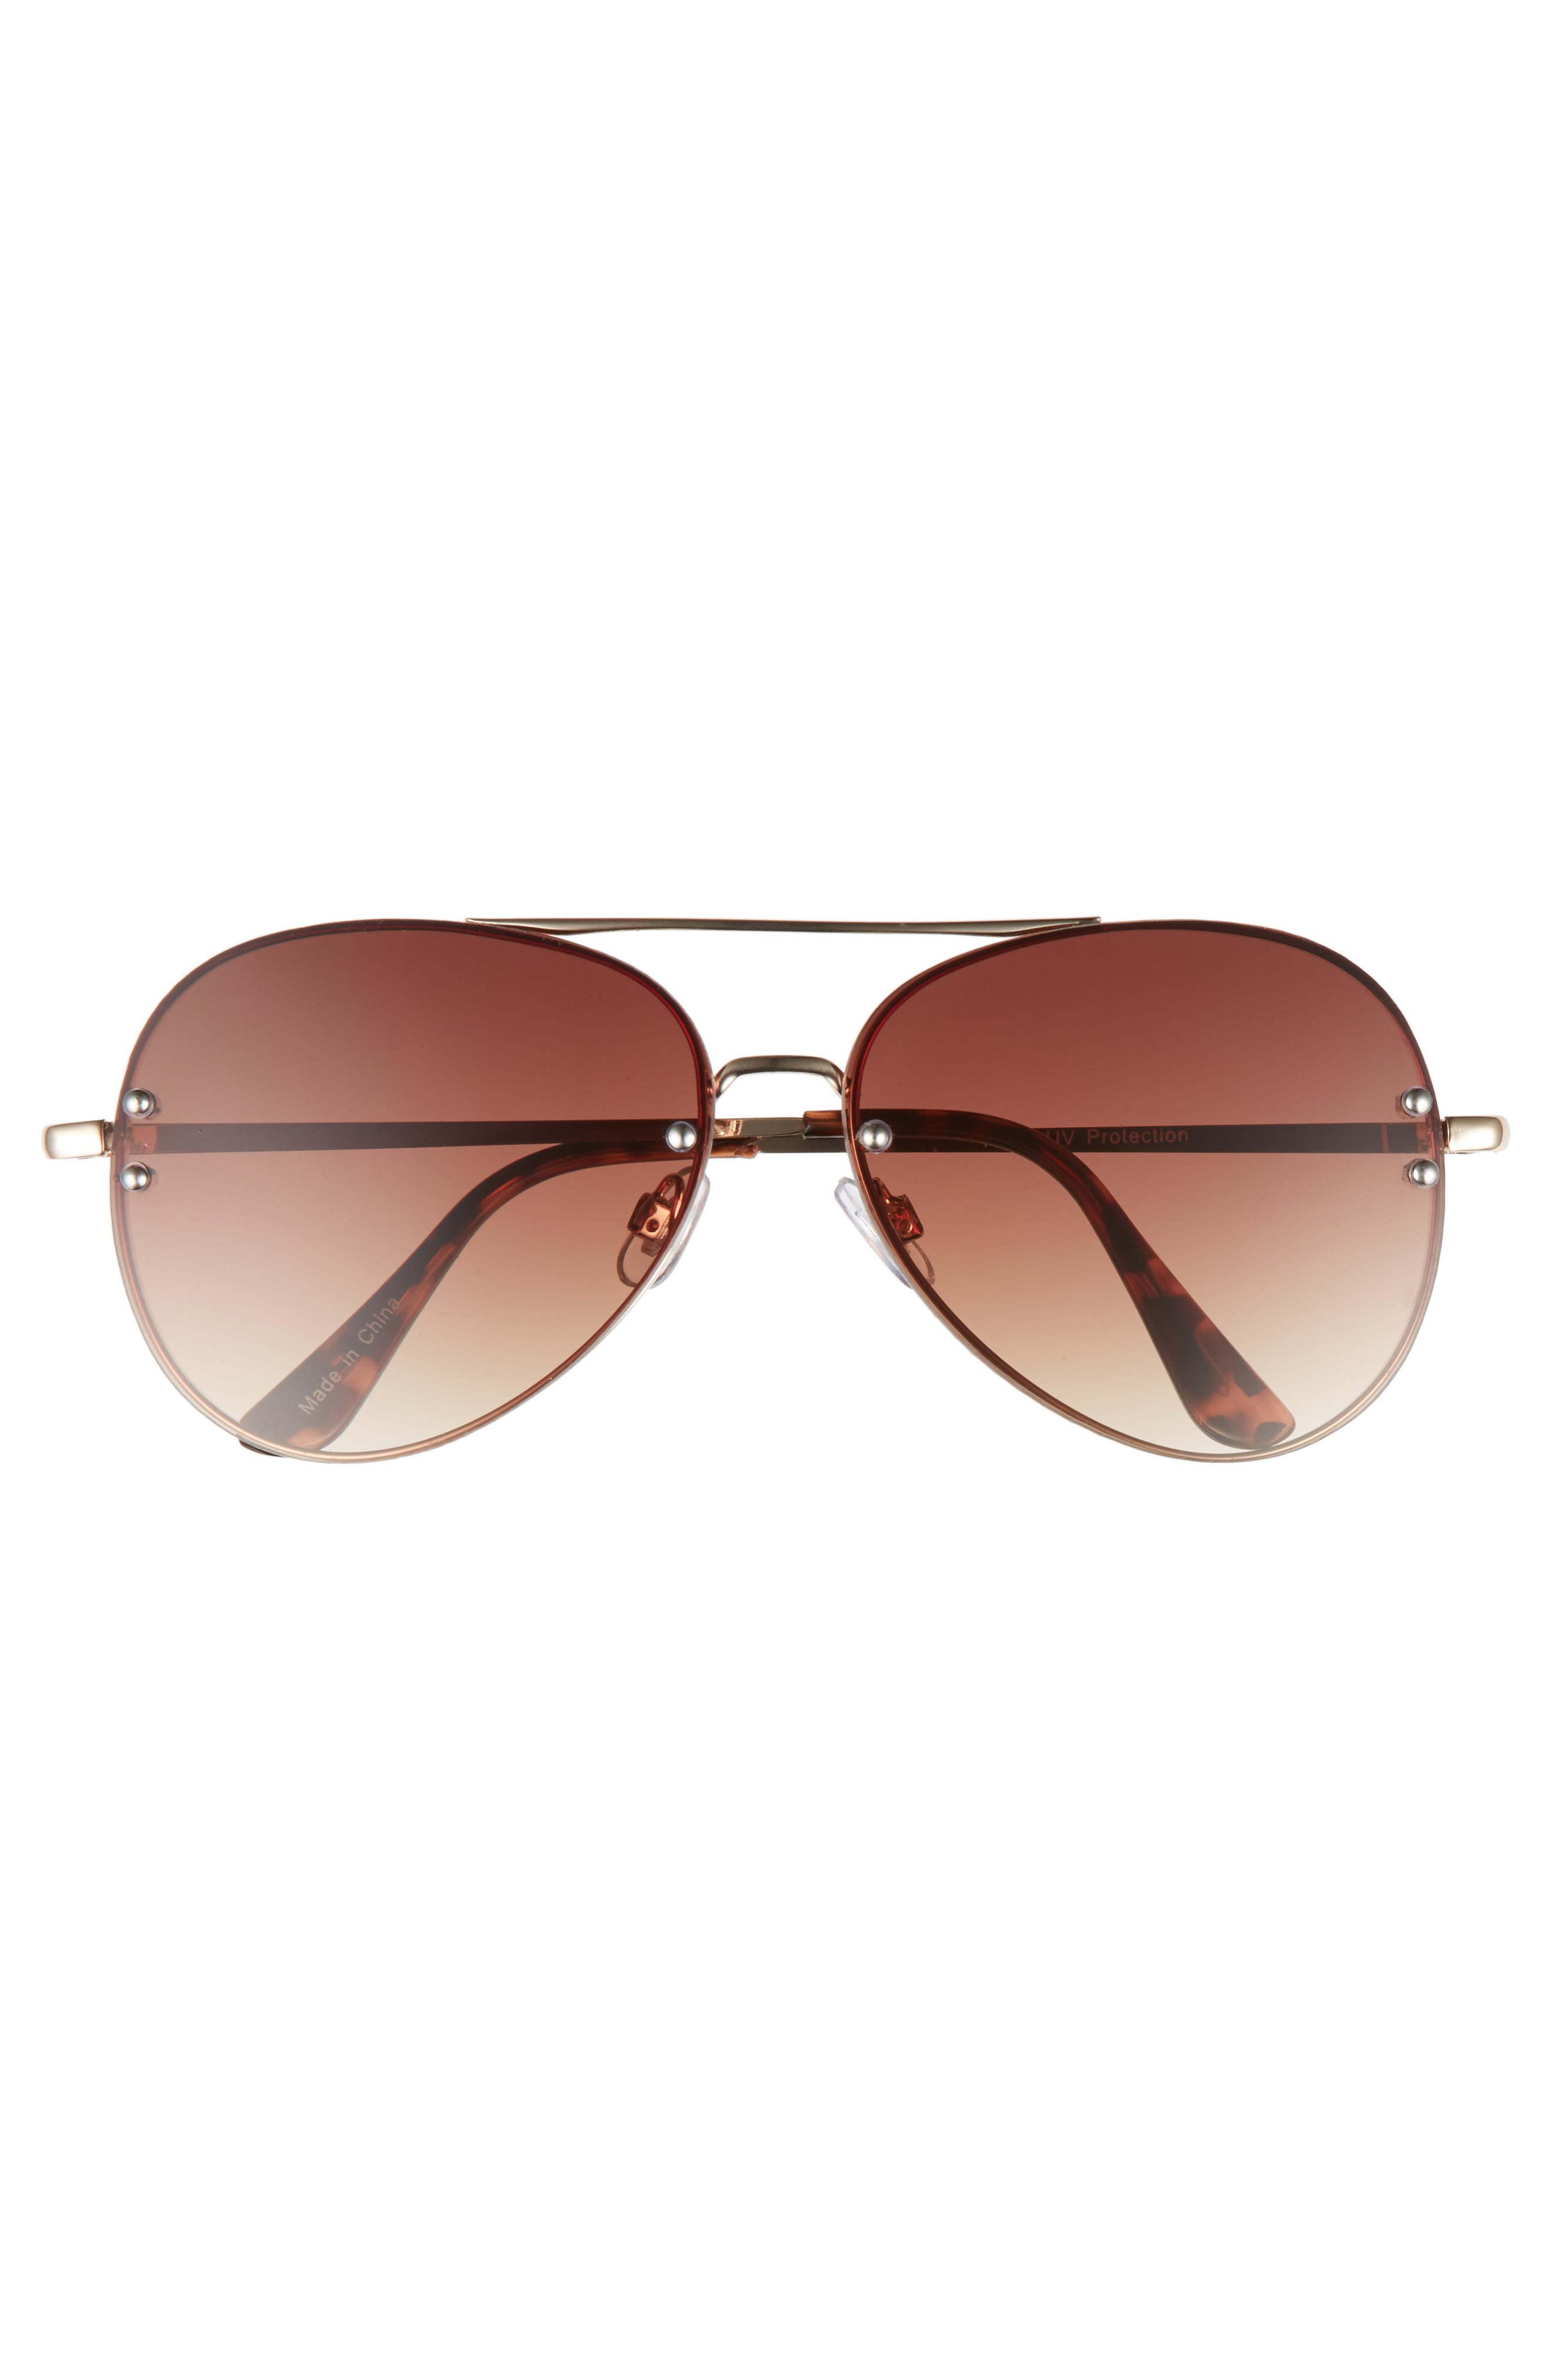 60mm Oversize Mirrored Aviator Sunglasses,                             Alternate thumbnail 3, color,                             GOLD/ BROWN